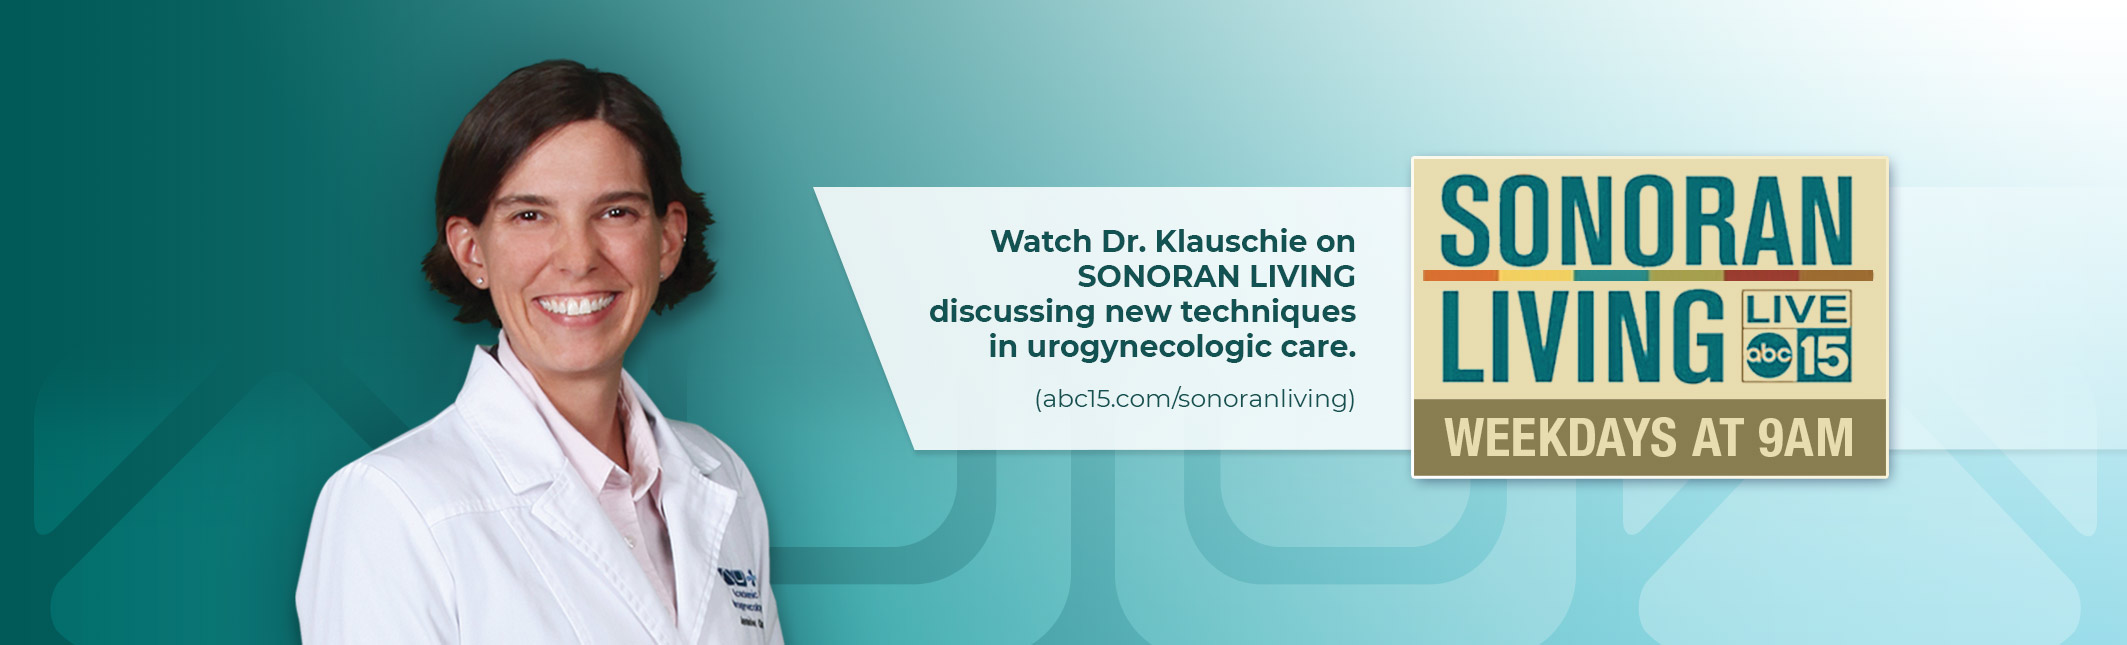 Watch Dr. Klauschie on SONORAN LIVING discussing new techniques in urogynecologic care.